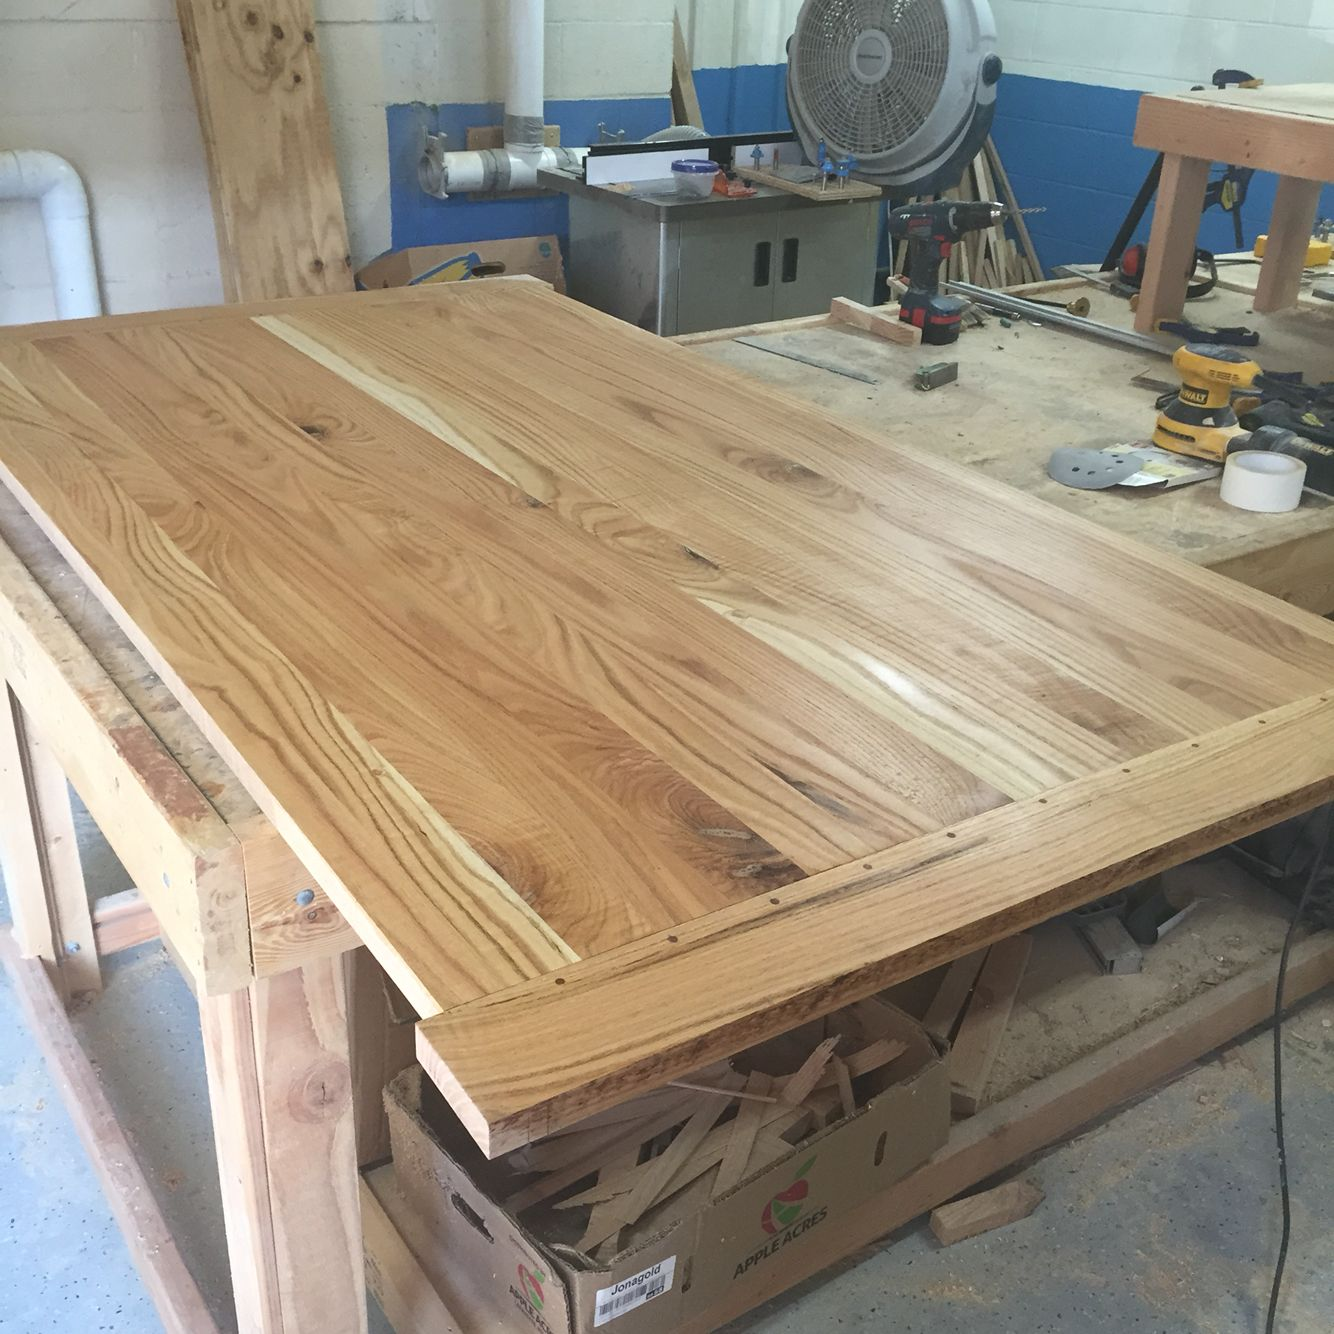 The X Red Oak Farmhouse Table Top Is Fully Assembled Now Its - Red oak table top